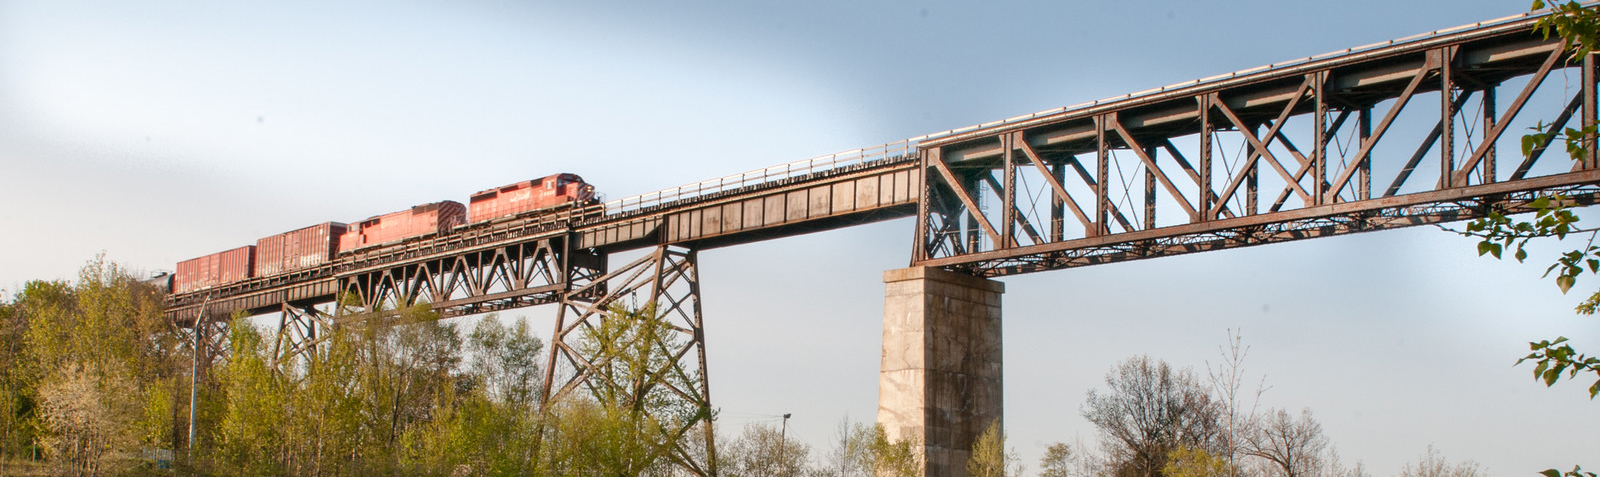 Train on Trestle Bridge